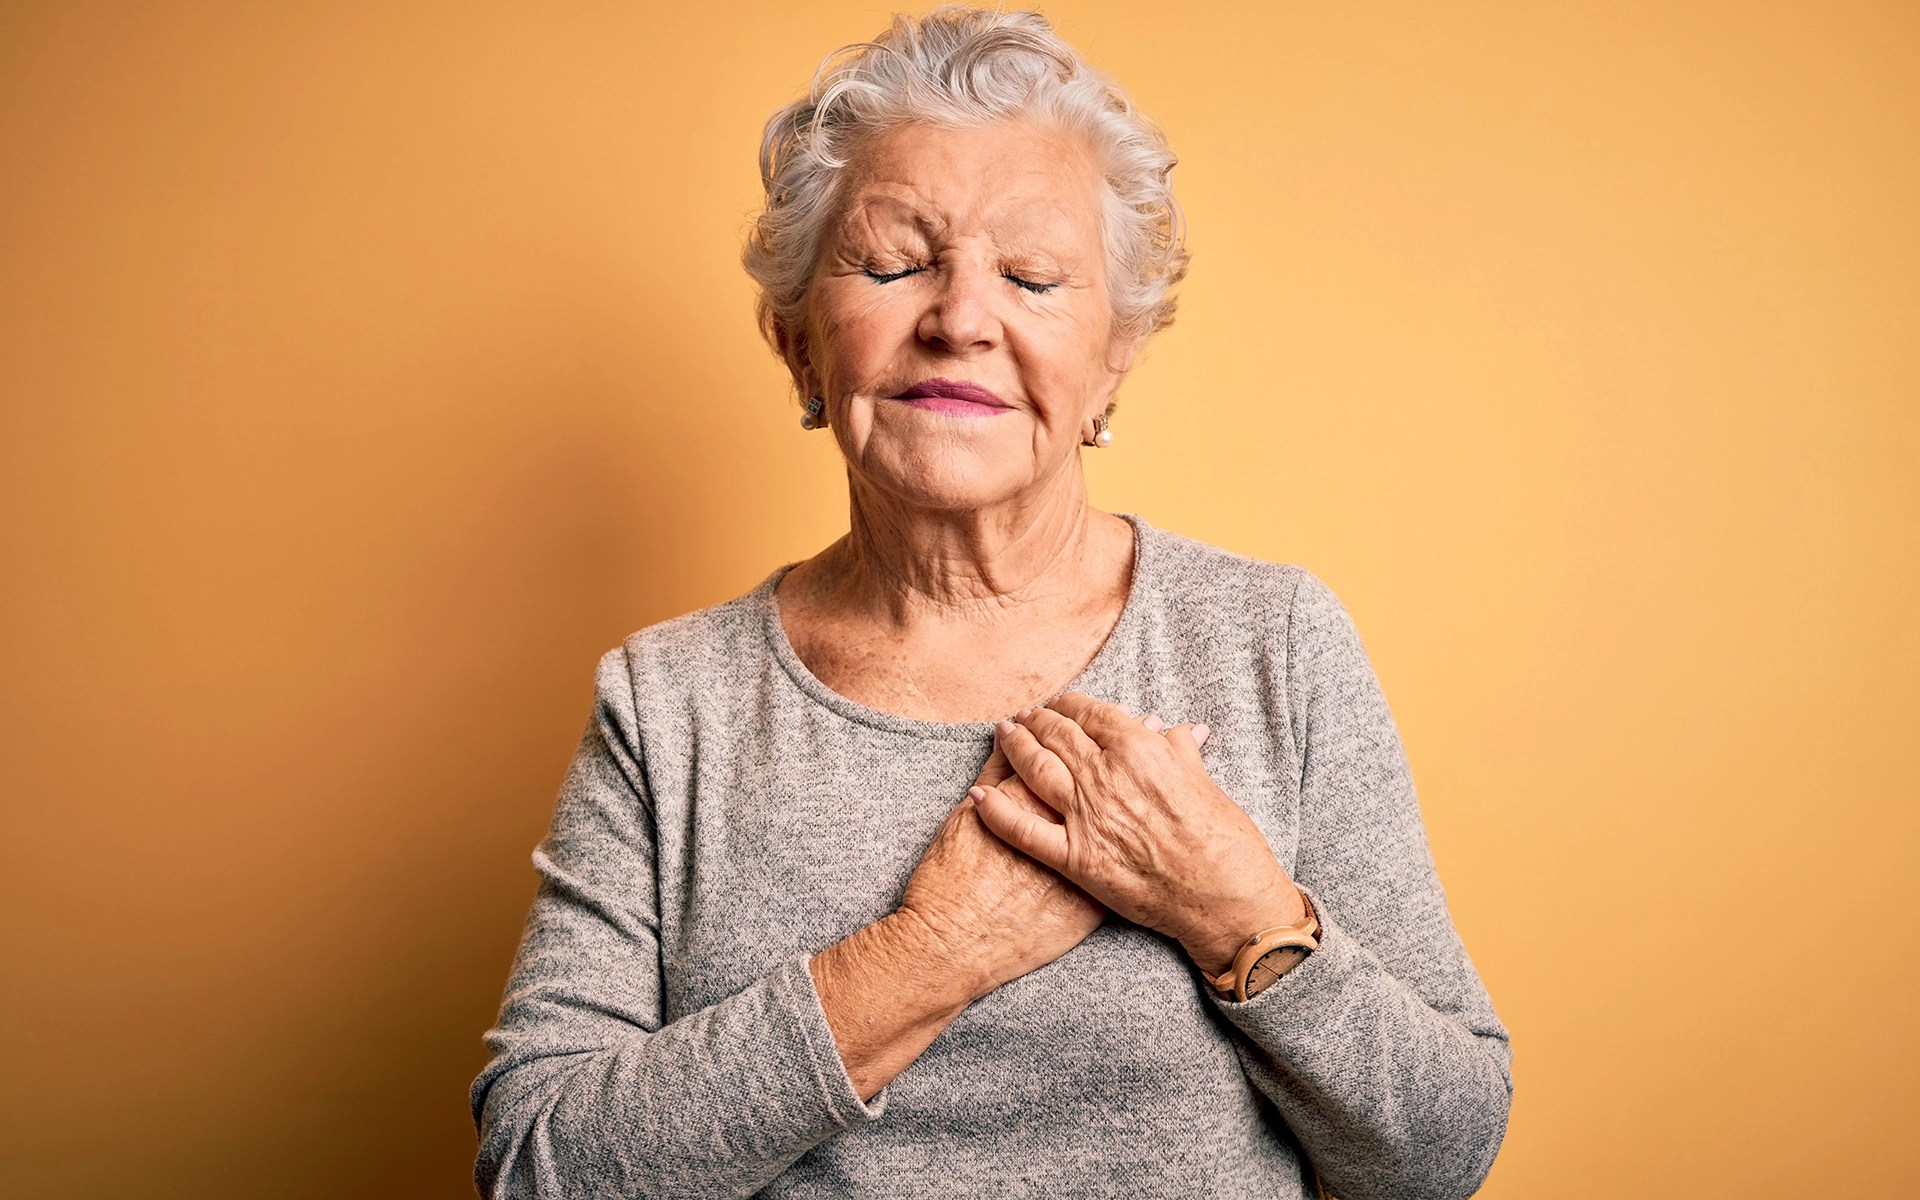 Senior beautiful woman wearing casual t-shirt standing over isolated yellow background smiling with hands on chest with closed eyes and grateful gesture on face.